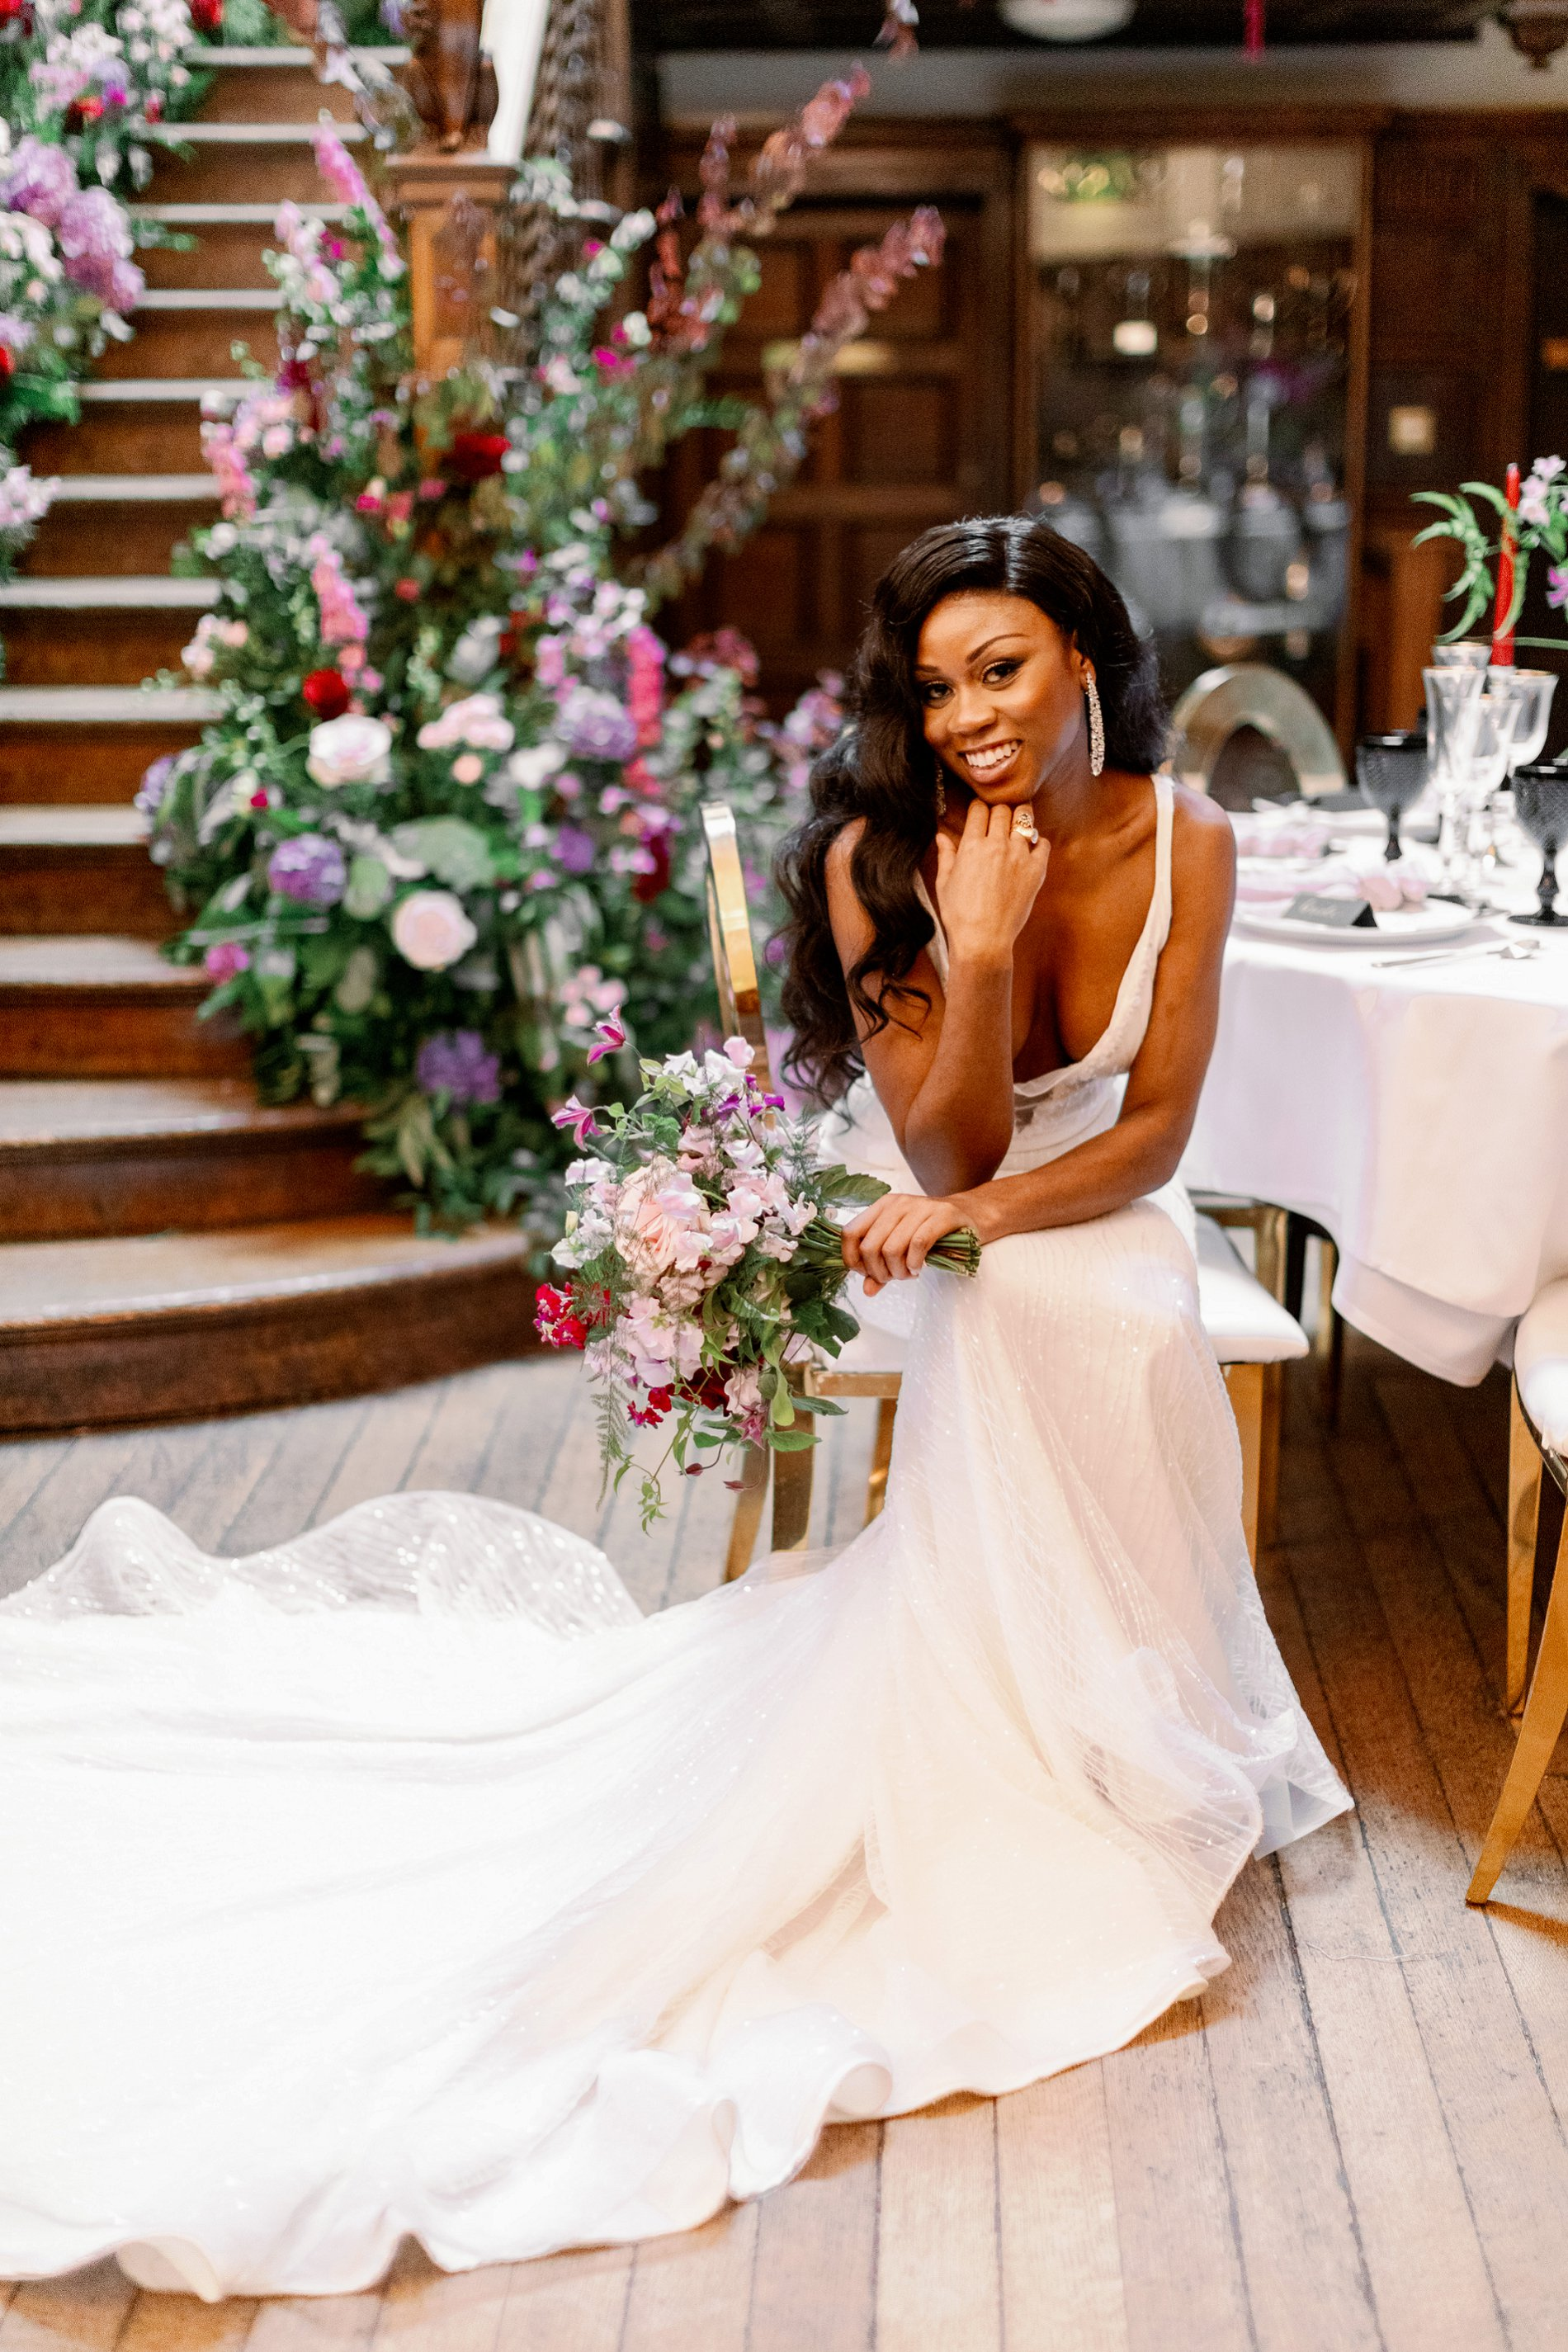 Forever Yours Styled Shoot (c) Camilla J. Hards and Courtney Dee Photography (39)